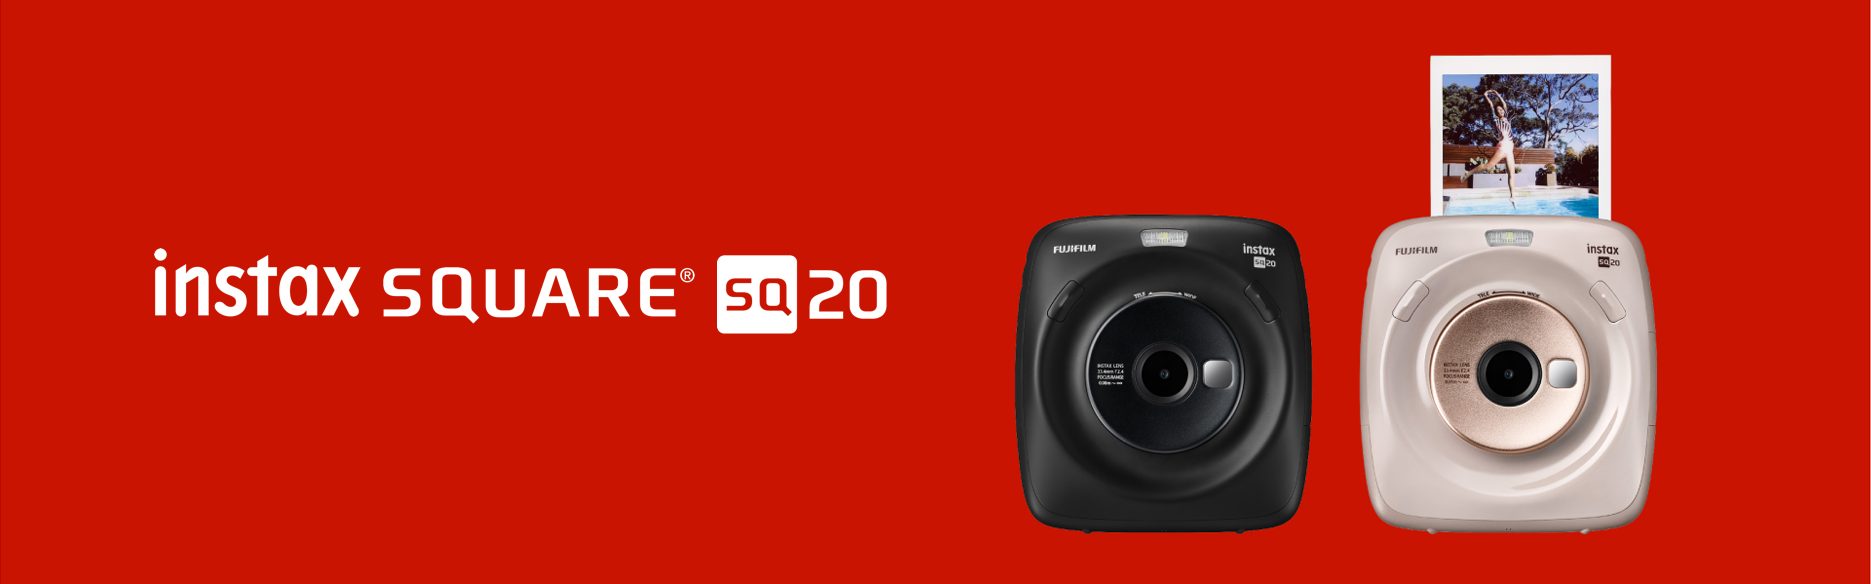 Red hero image with SQUARE SQ20 cameras in black and pink colors